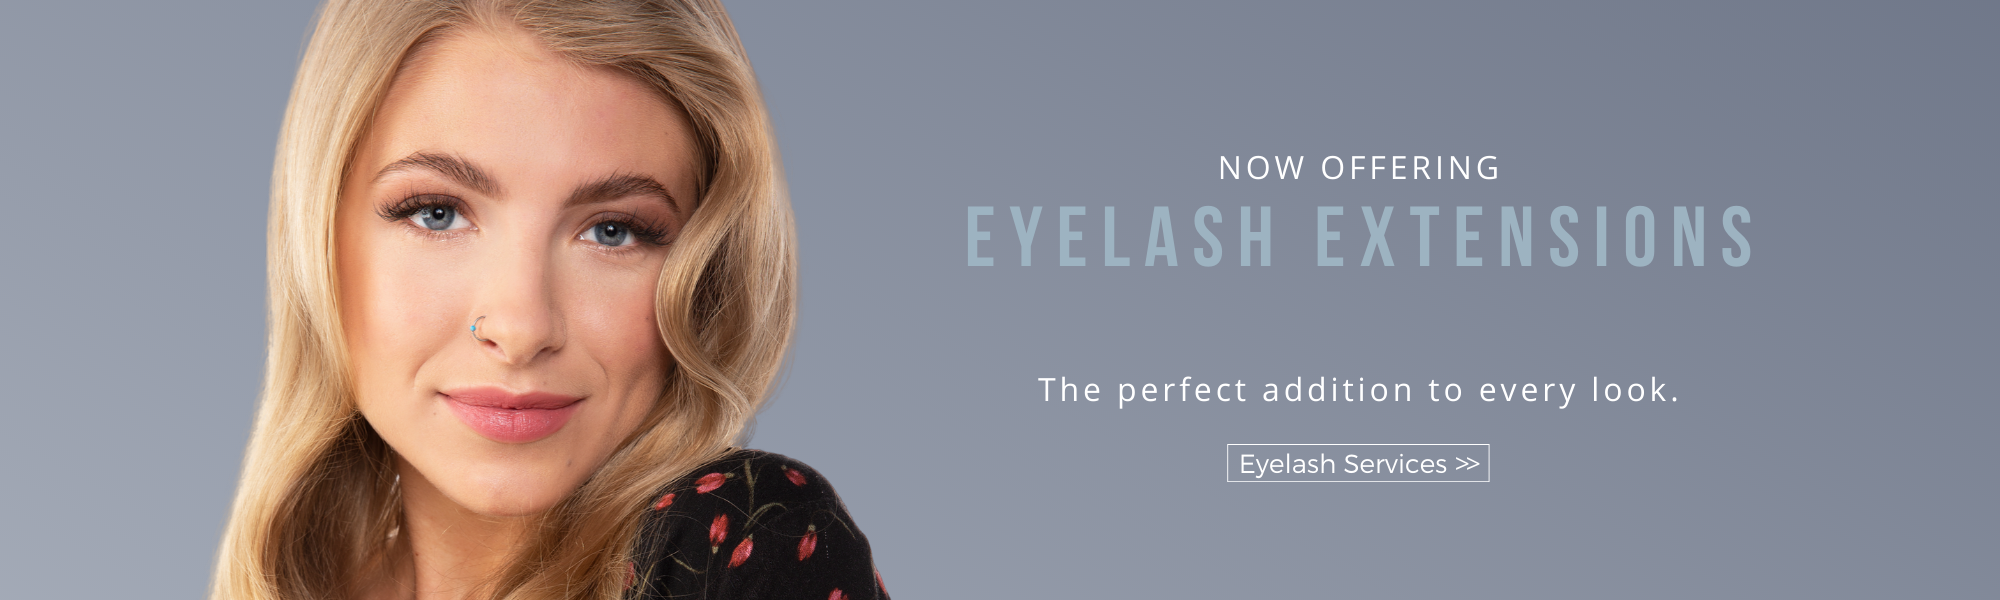 eyelash extensions are the perfect addition to any look. Get set for the new year with eyelash extensions now offered at Dosha Salon Spa